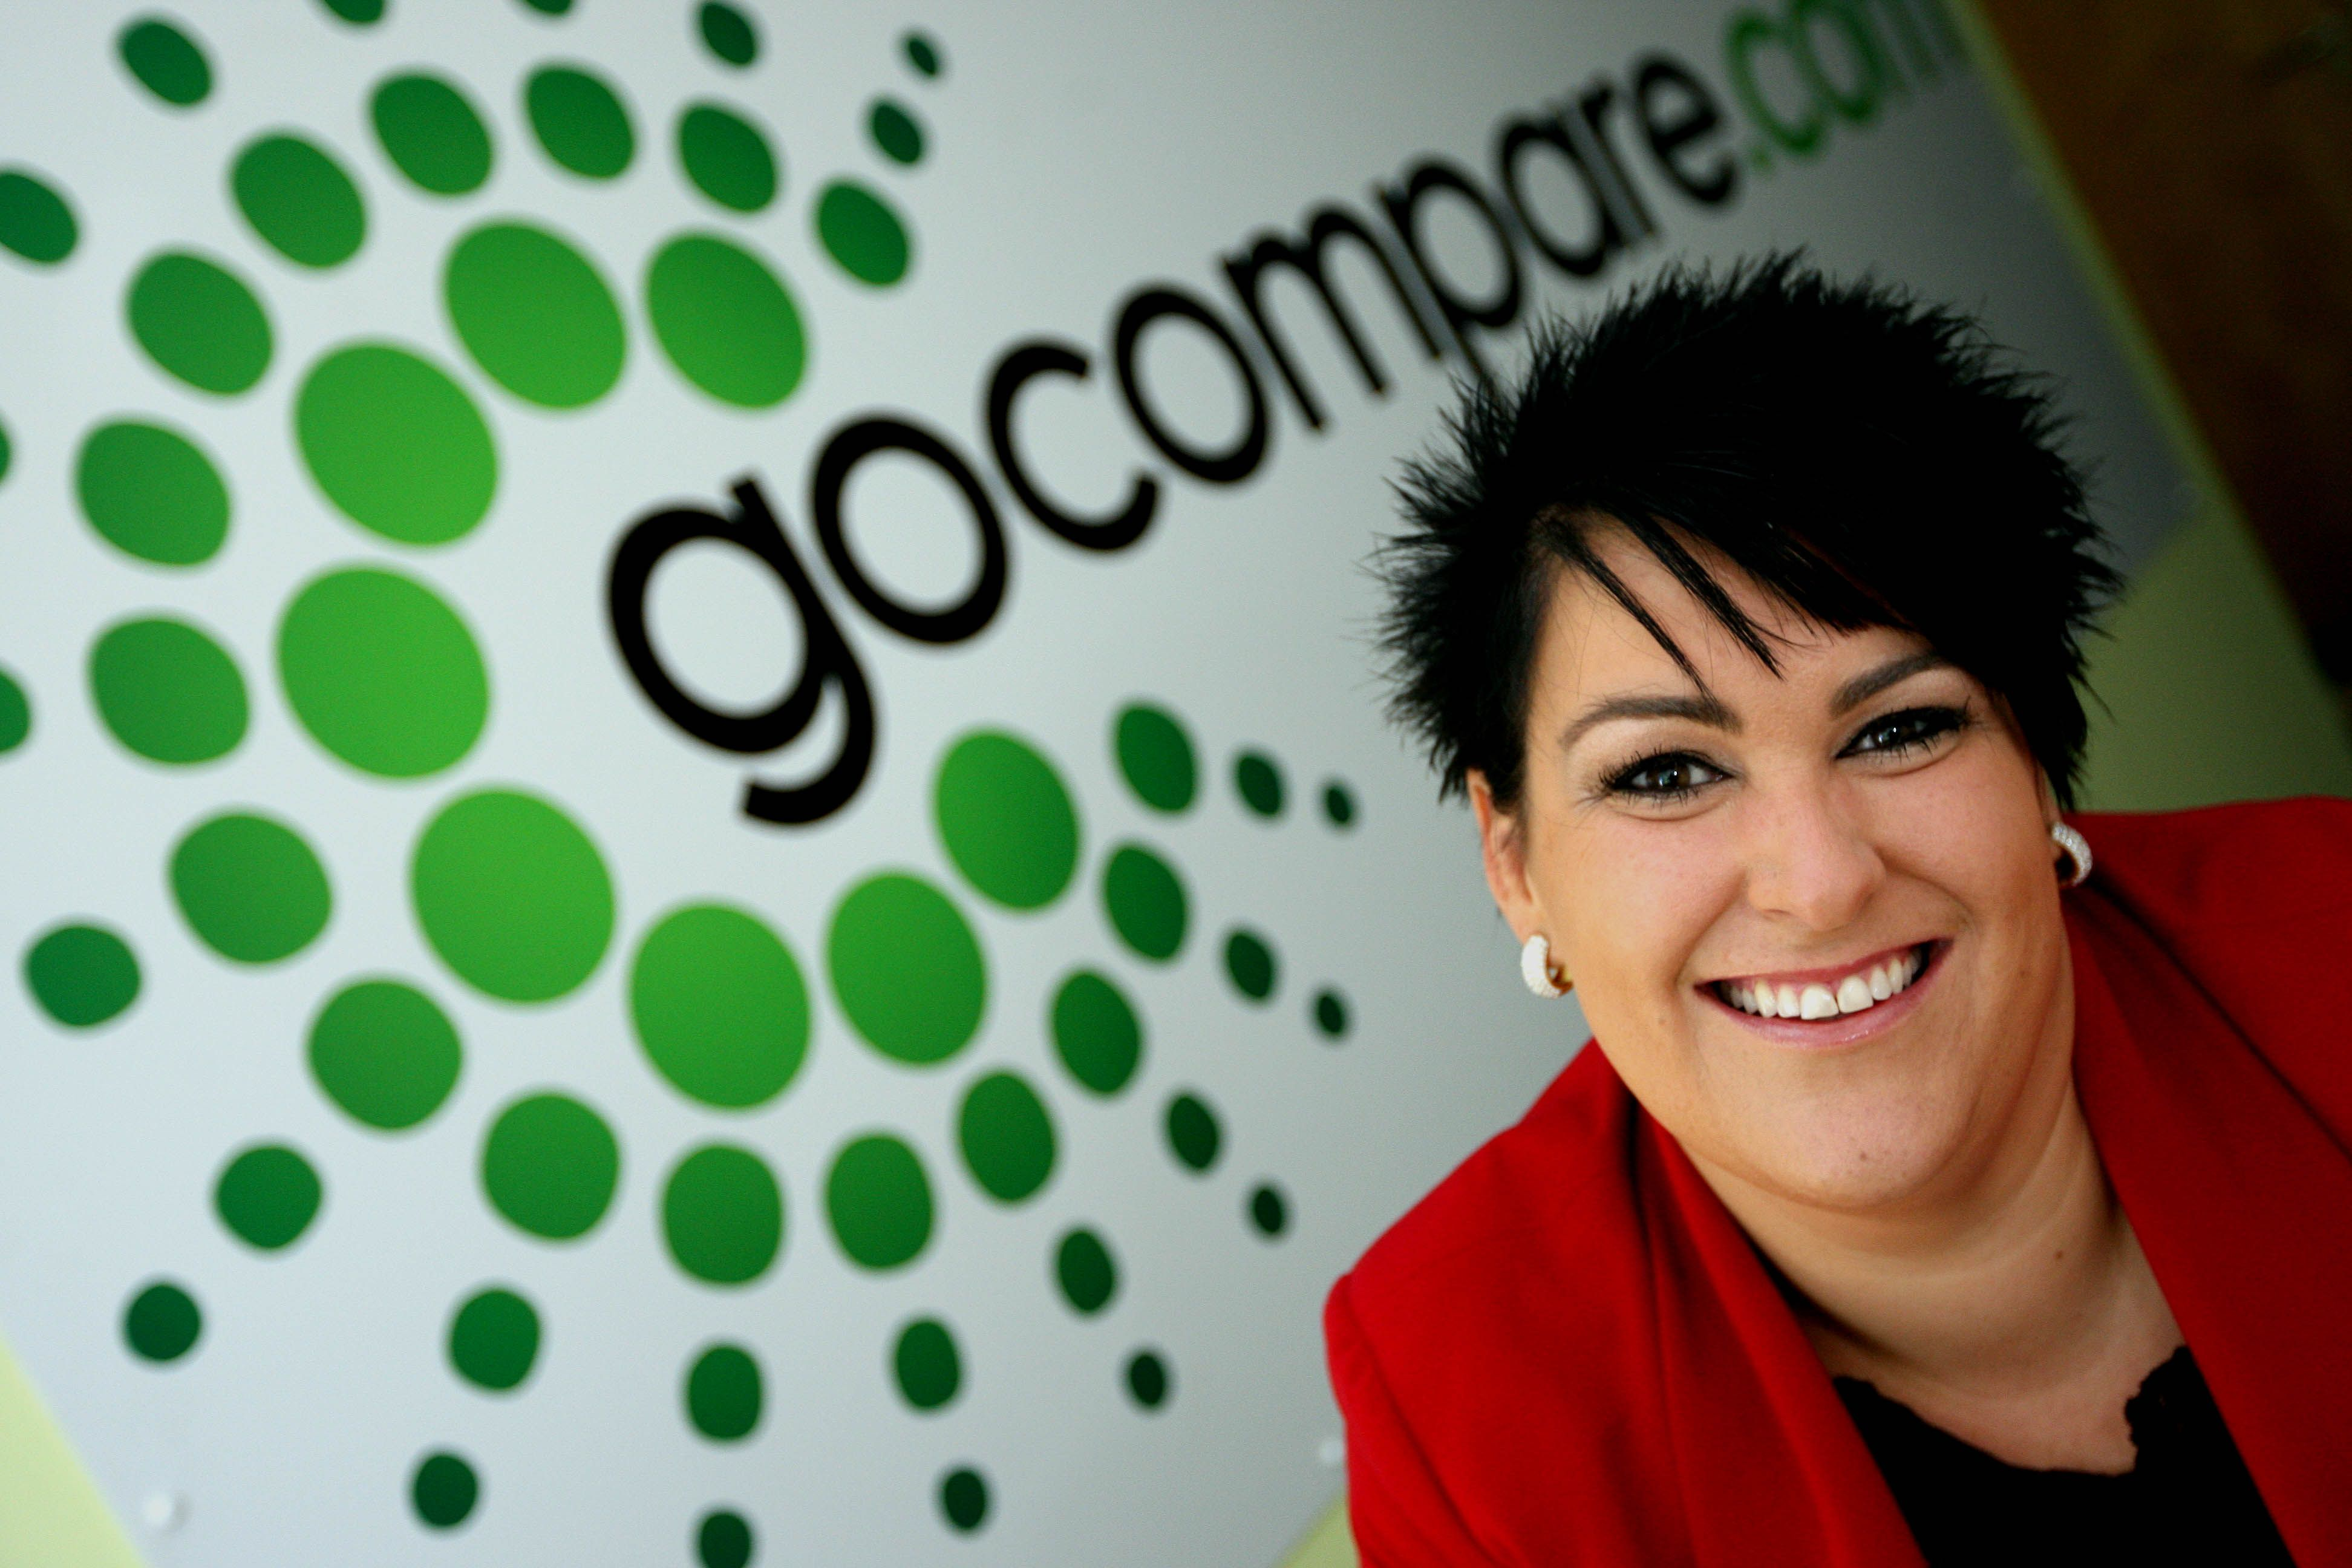 Gocompare founder Hayley Parsons tells her story